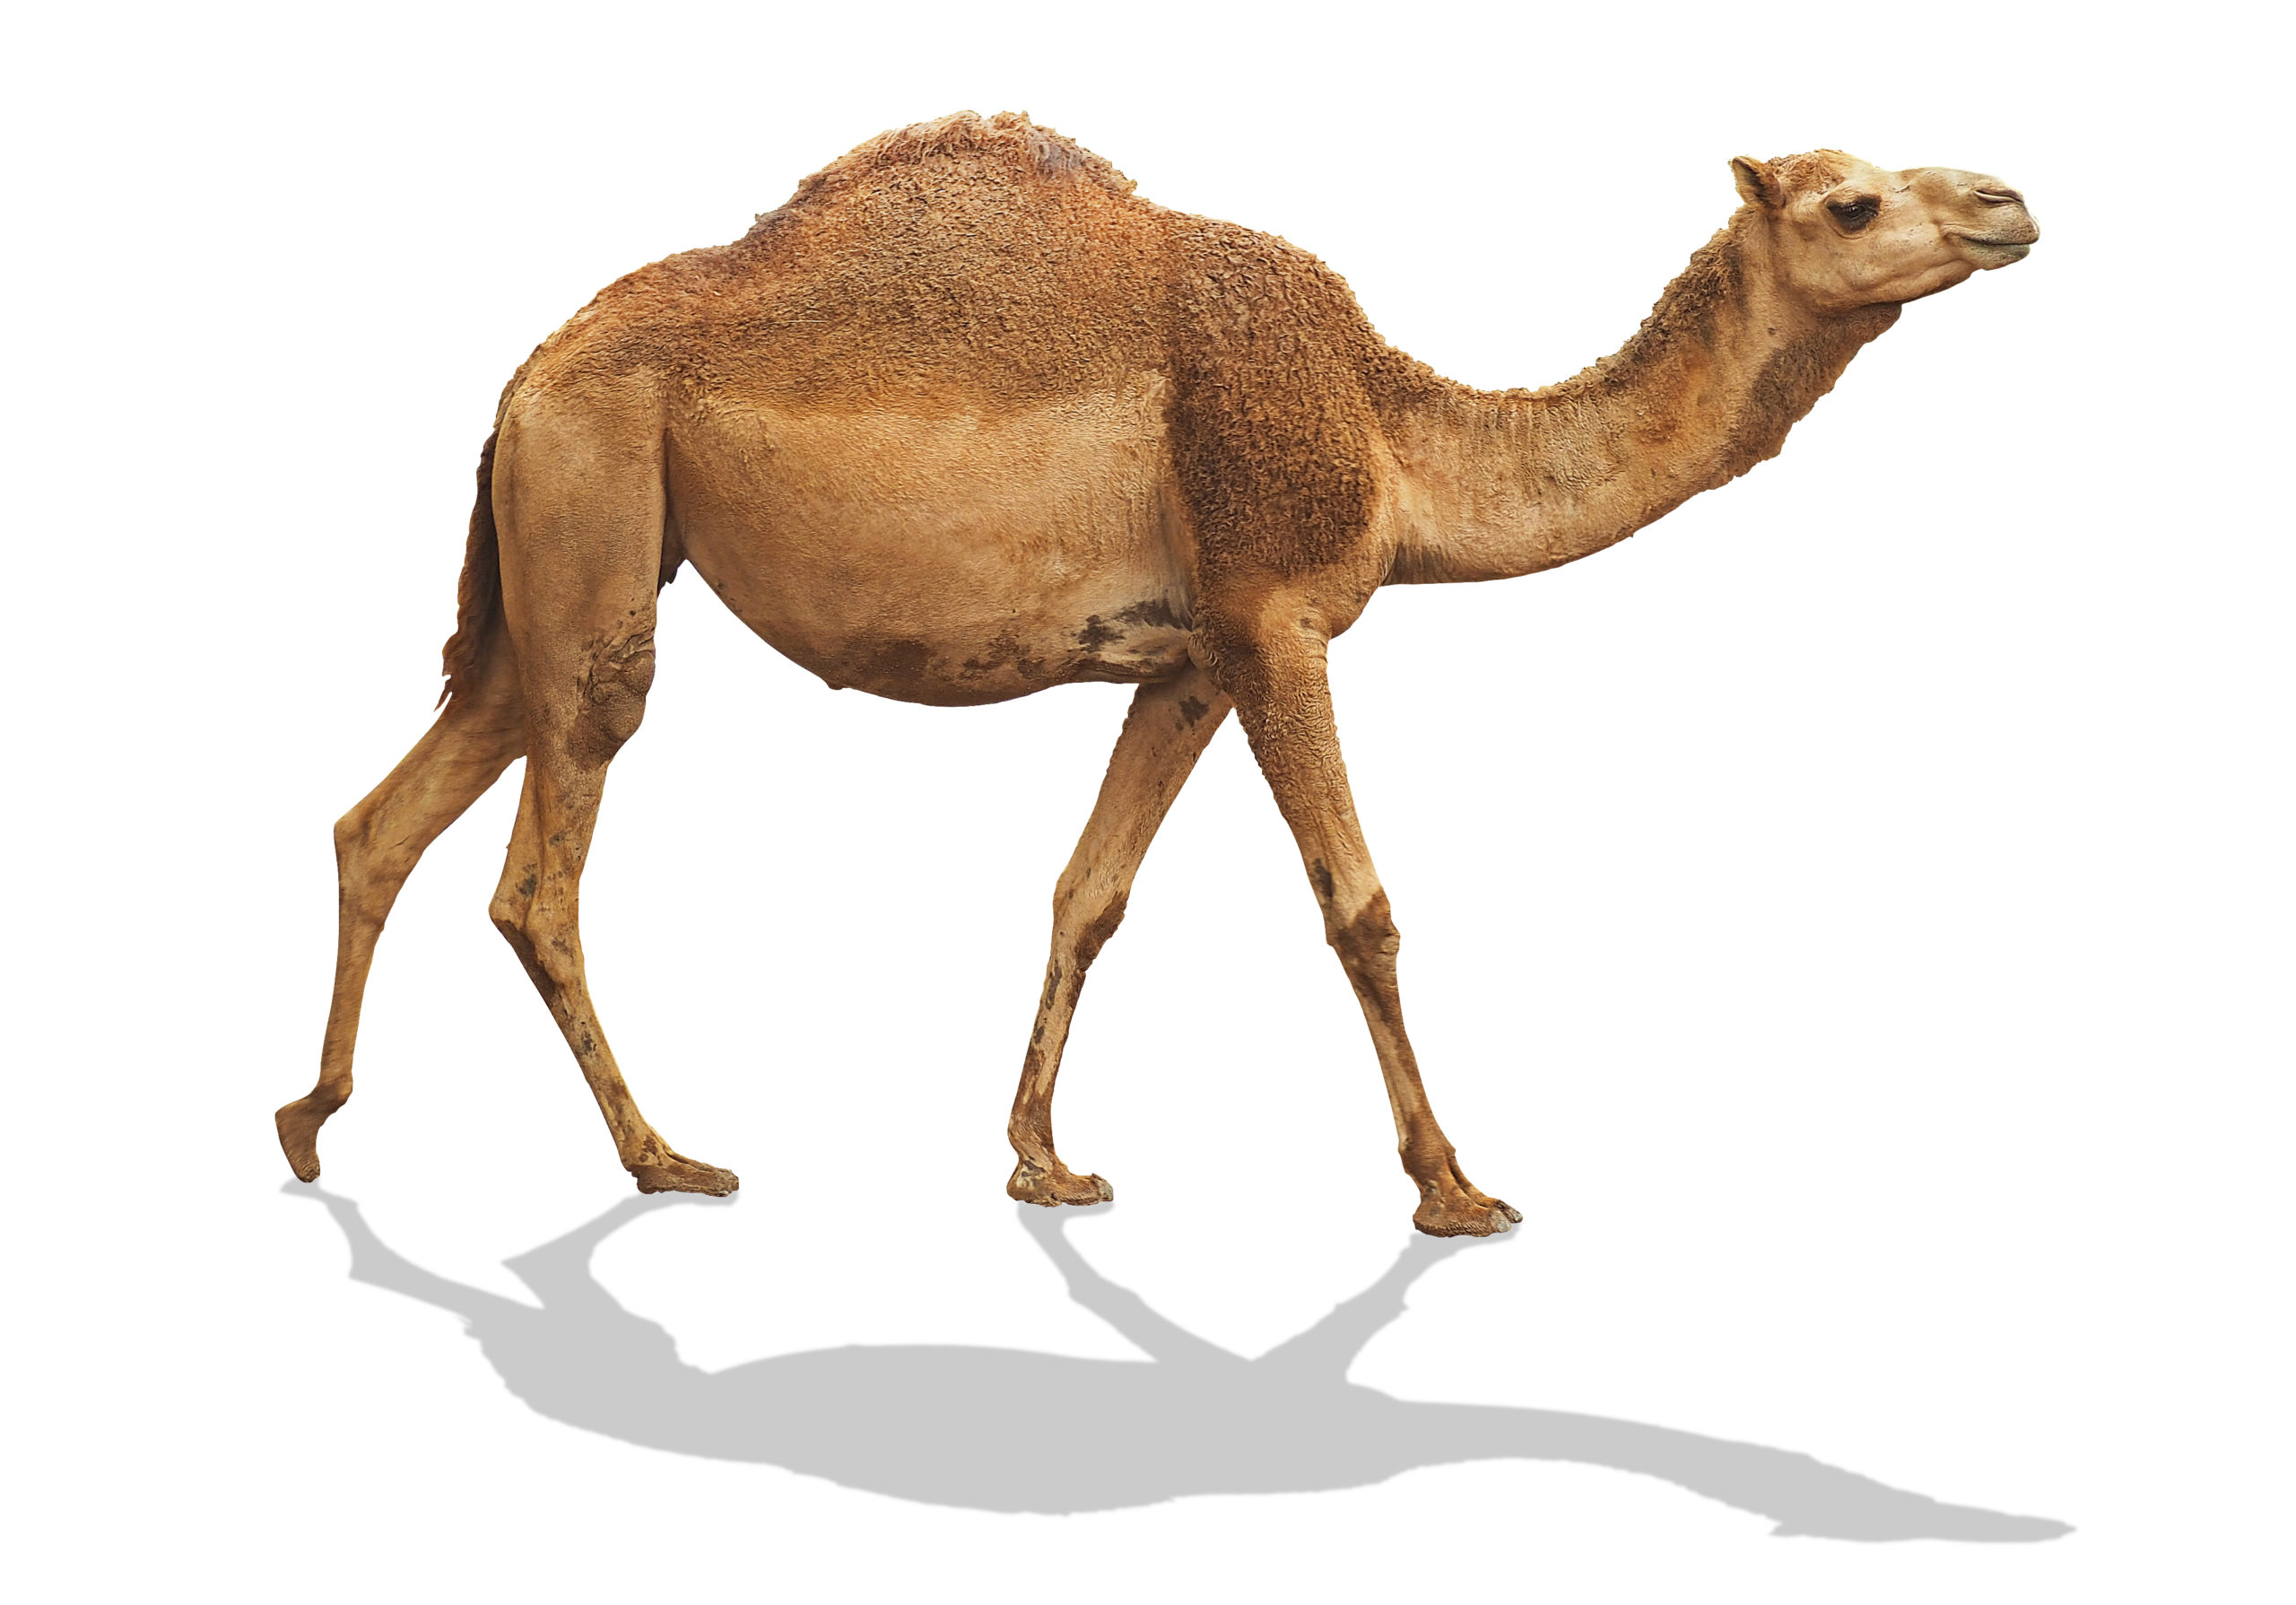 Walking like a camel – the lateral walk